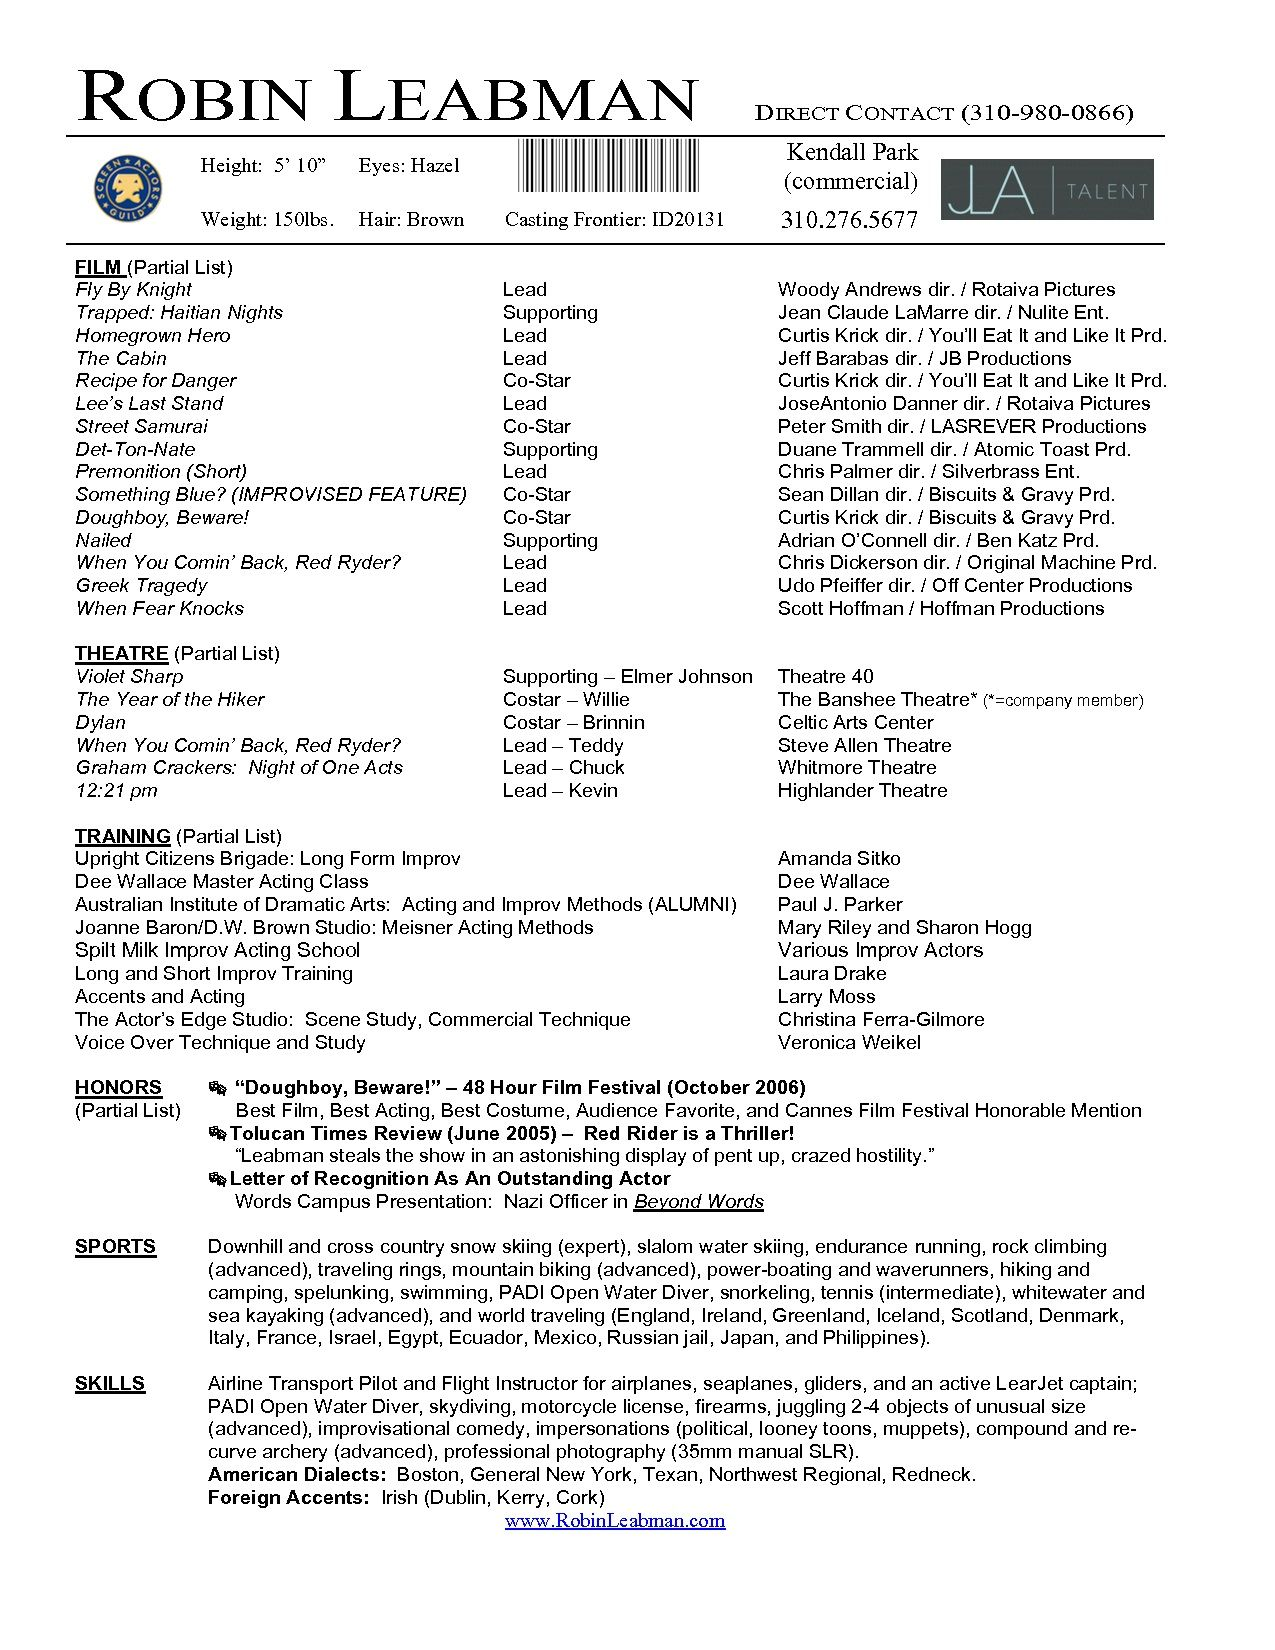 Resume Template Download Free Actor Resume Template Microsoft Word  Httpwwwresumecareer